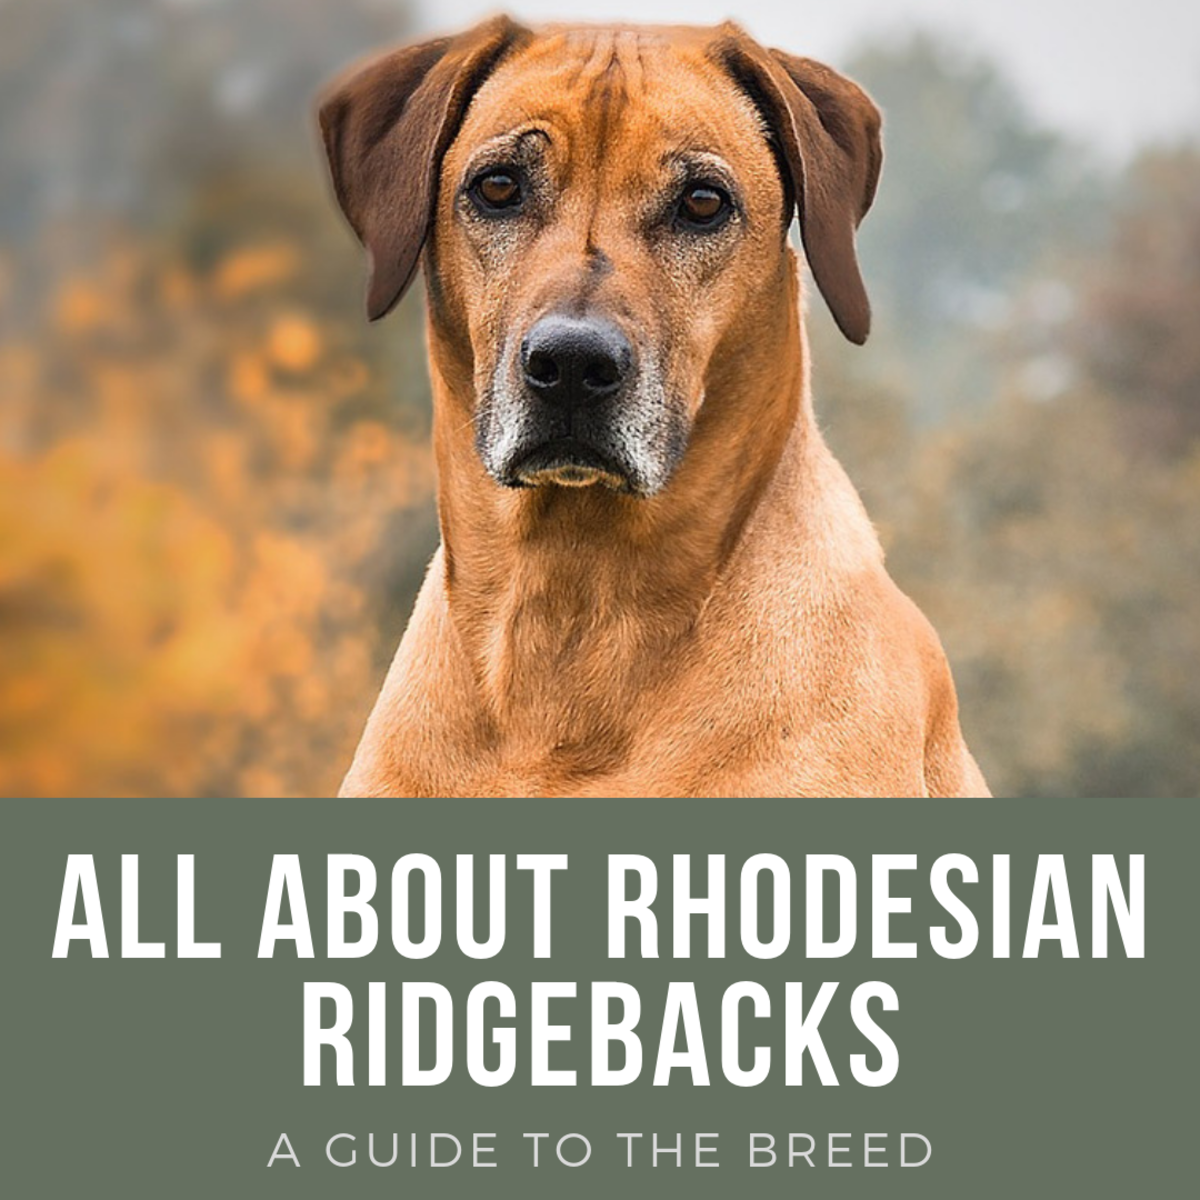 Learn about this breed's history, physical characteristics, temperament, and more.